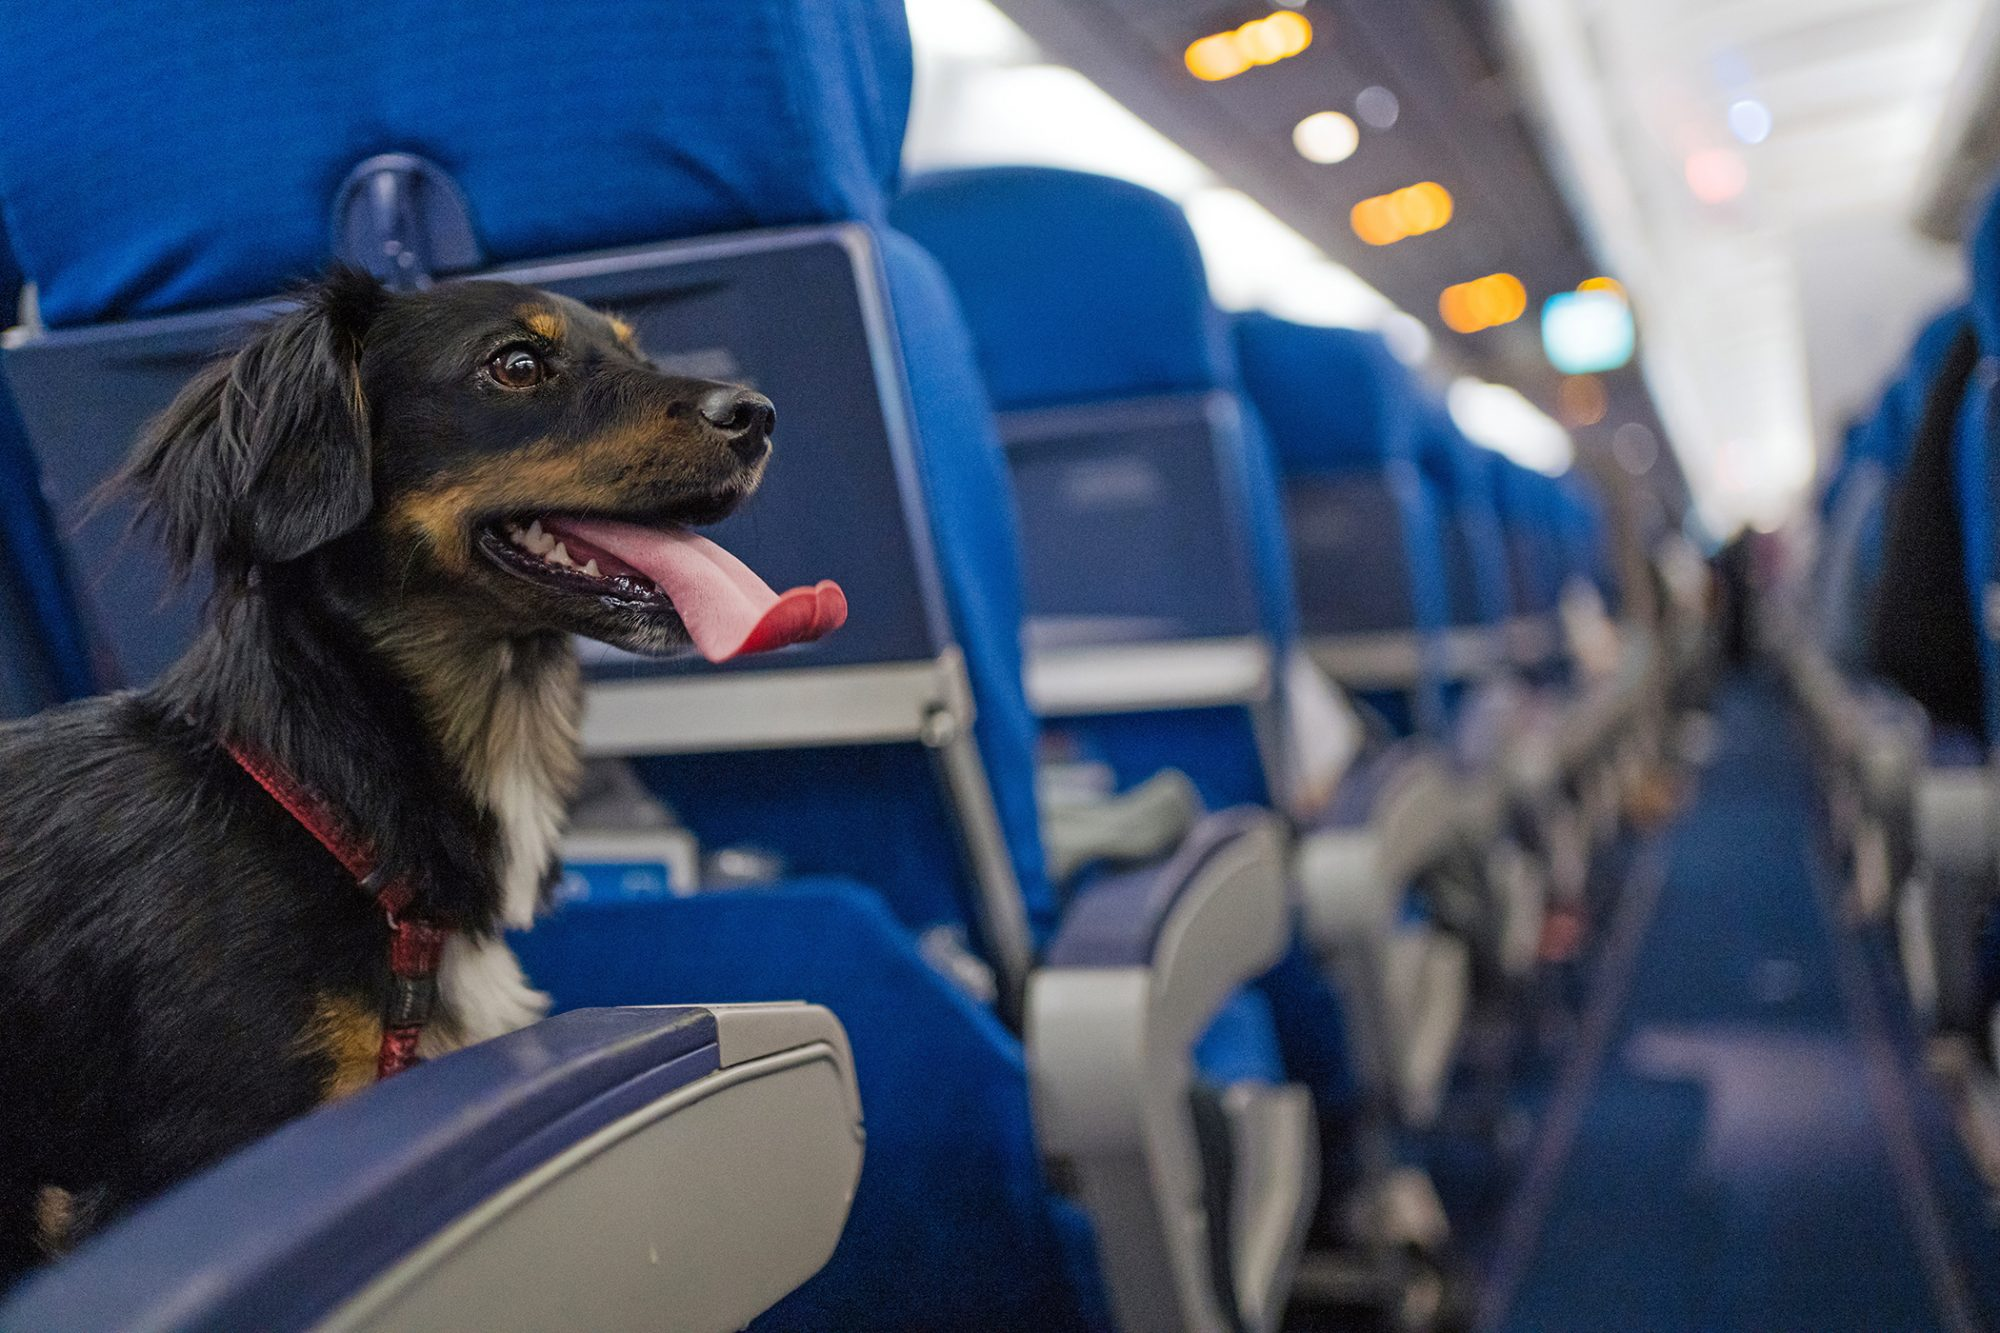 Dog sits in aisle seat on airplane, panting